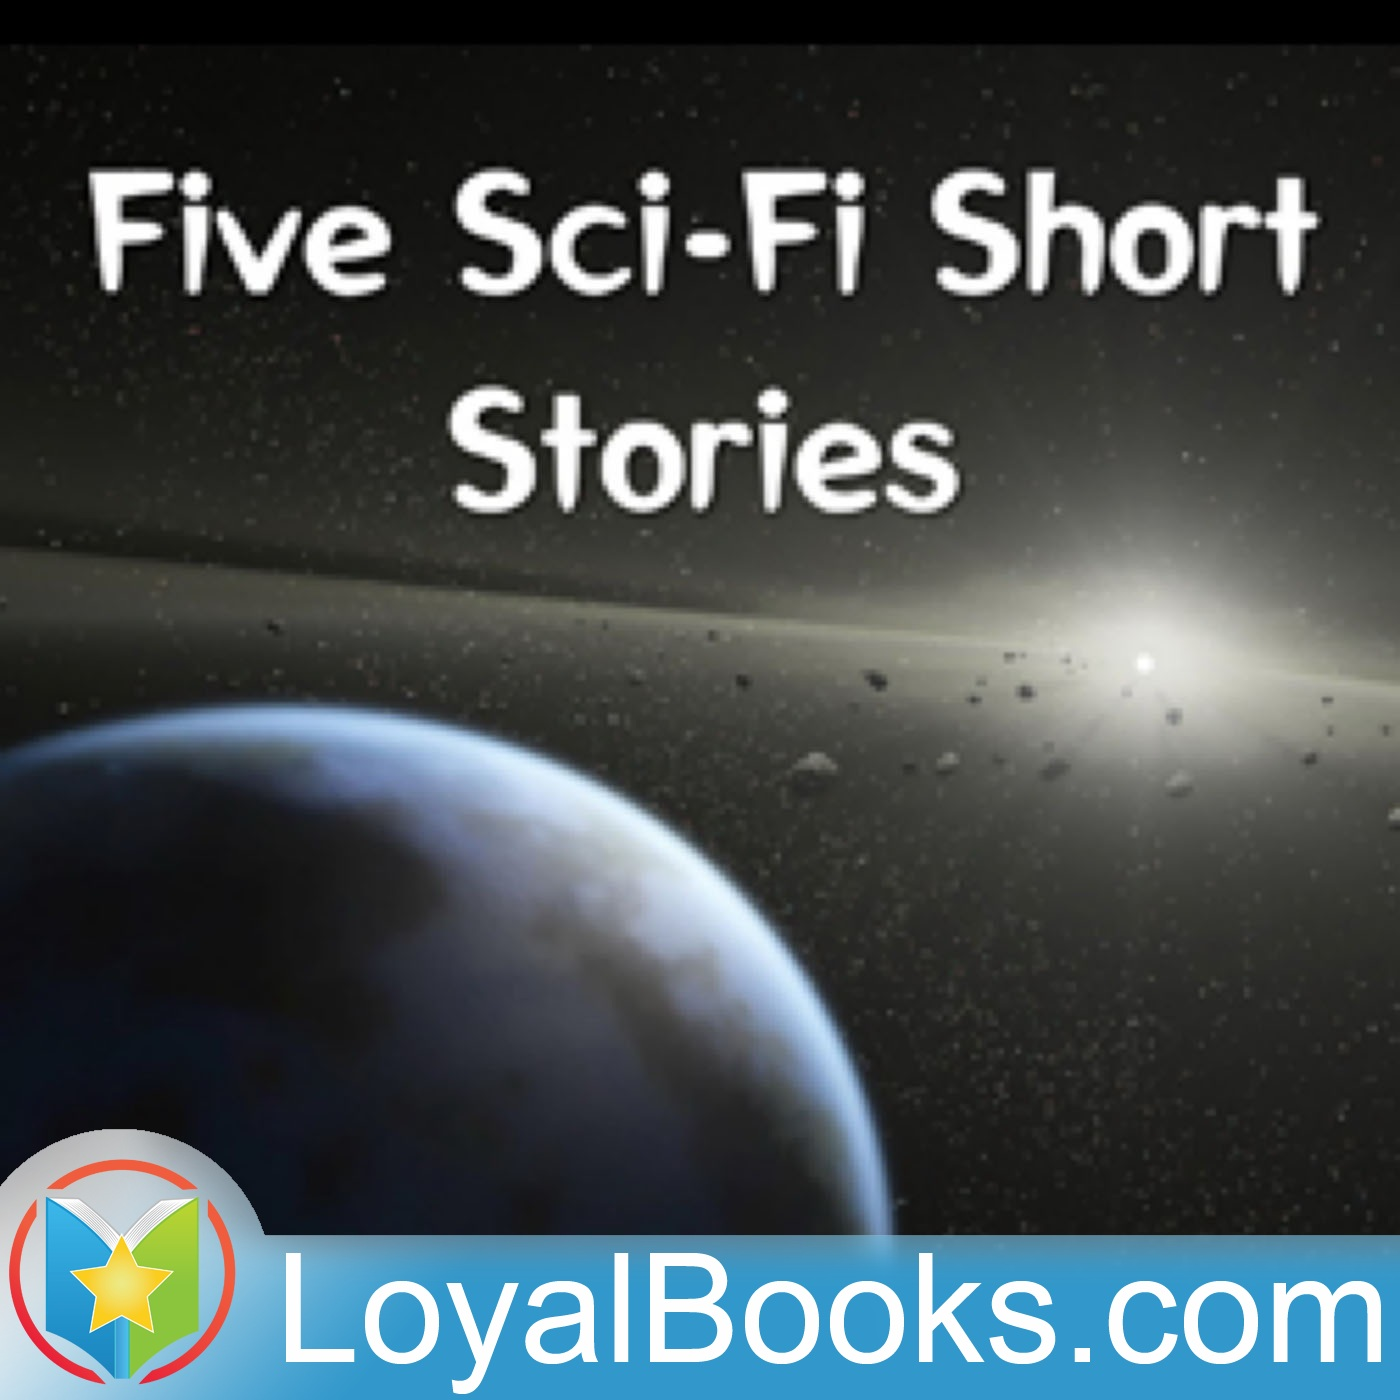 Five Sci-Fi Short Stories by H  Beam Piper by H  Beam Piper